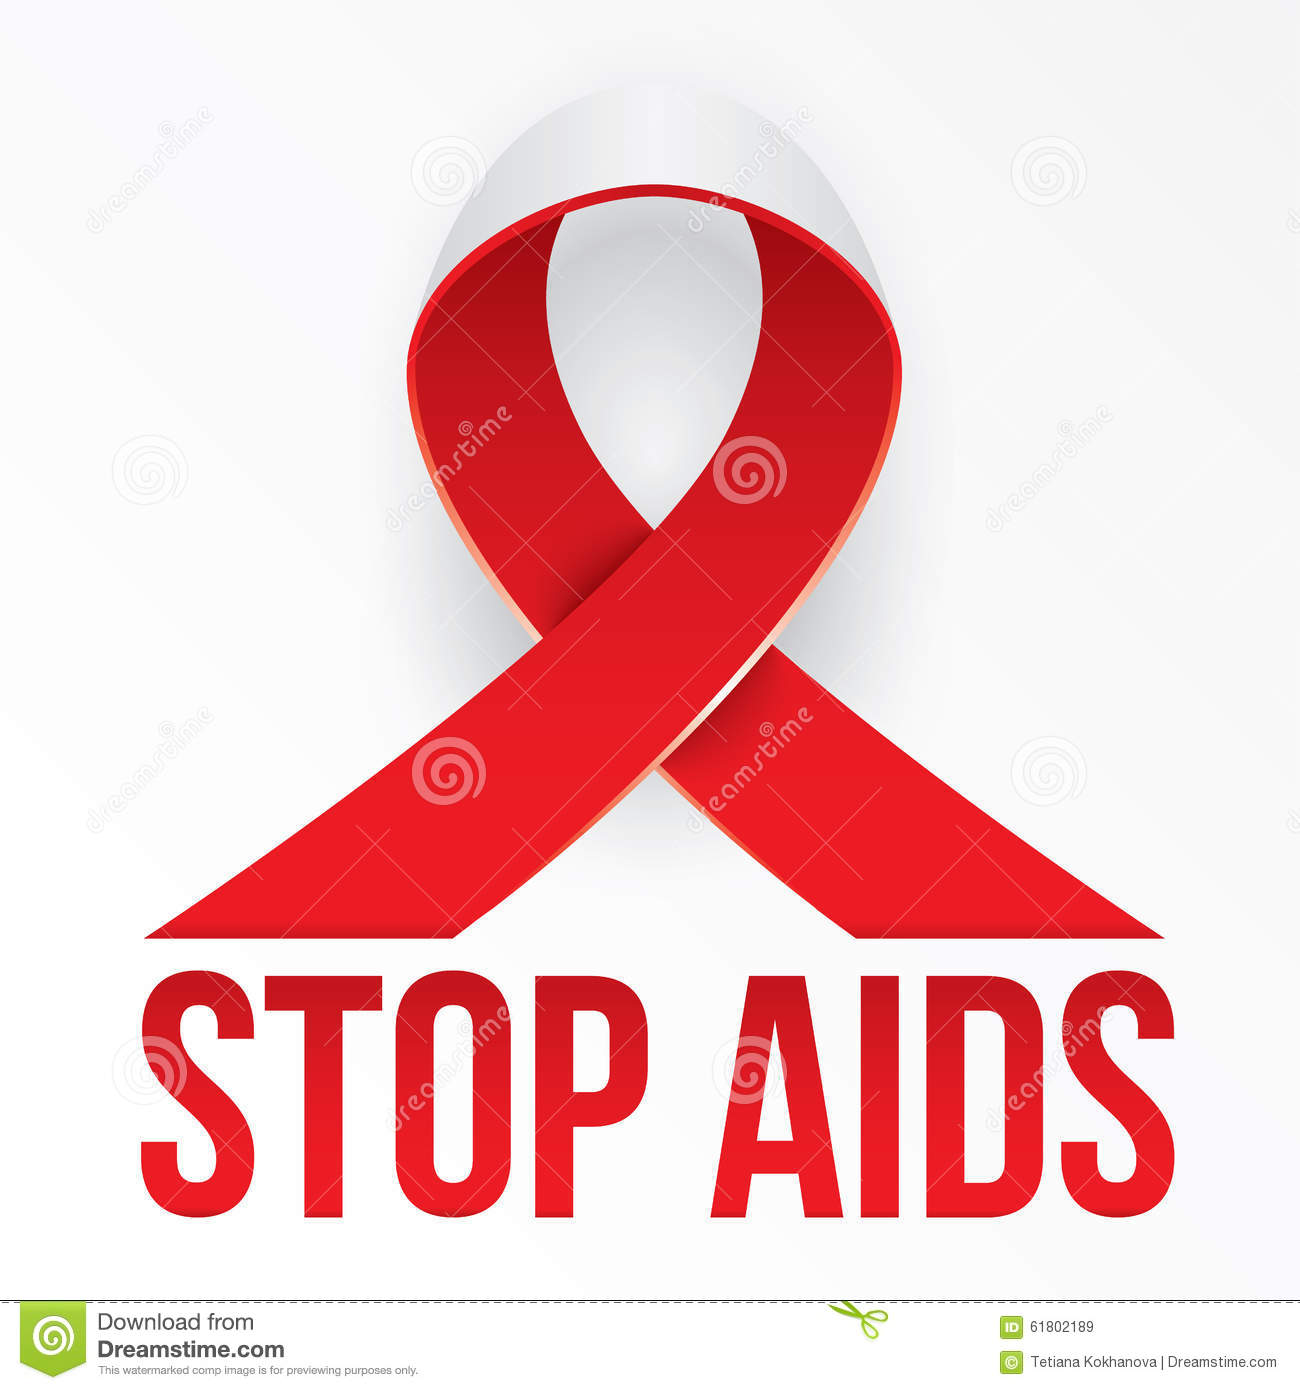 The Photorealistic Red Ribbon Is The Global Symbol For Solidarity